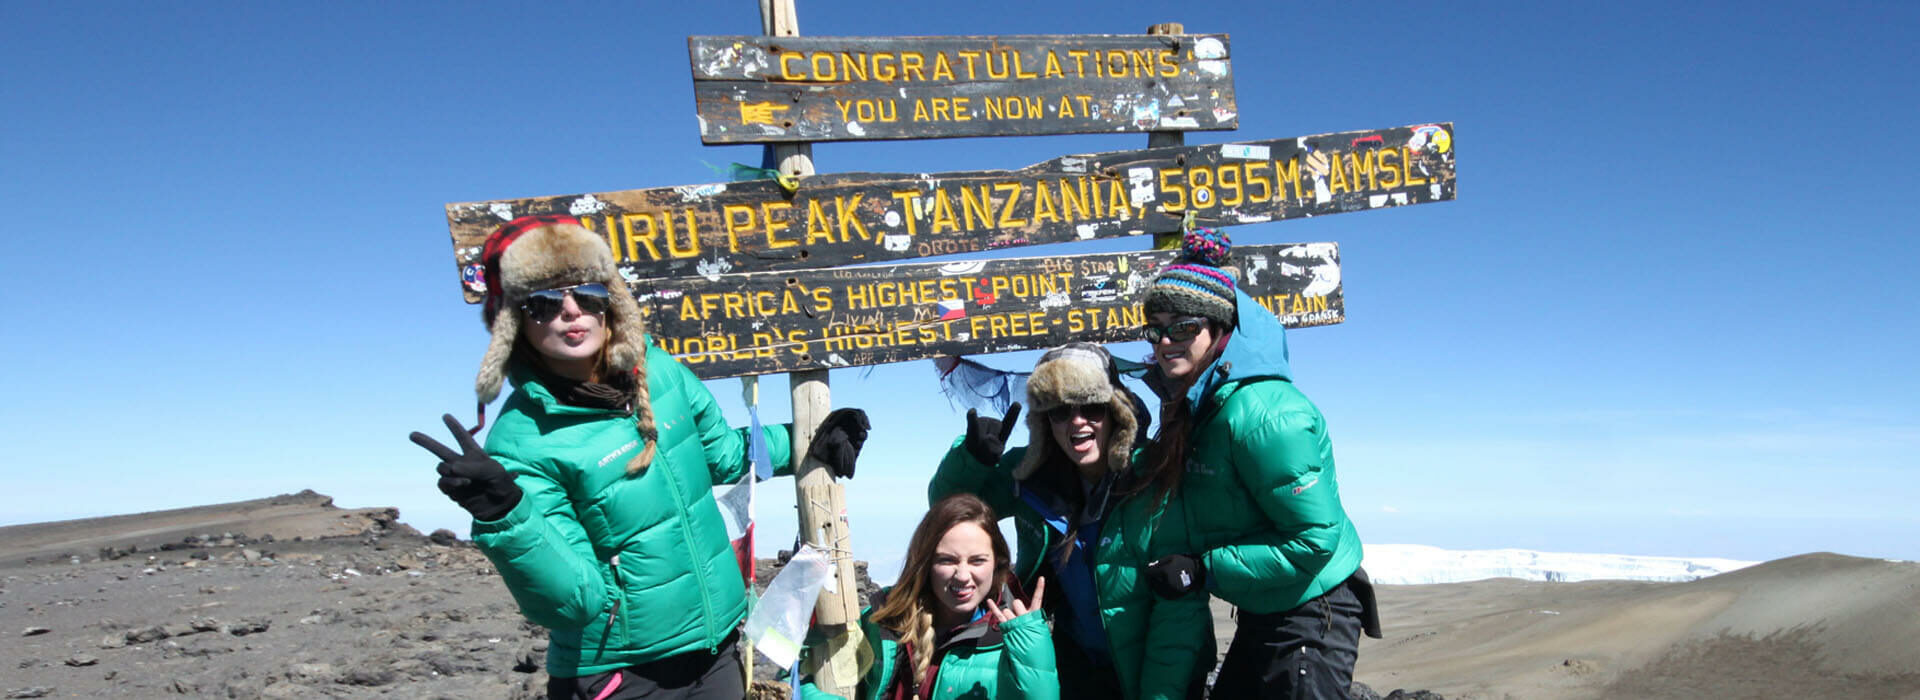 World's First All Female Kilimanjaro Expeditio